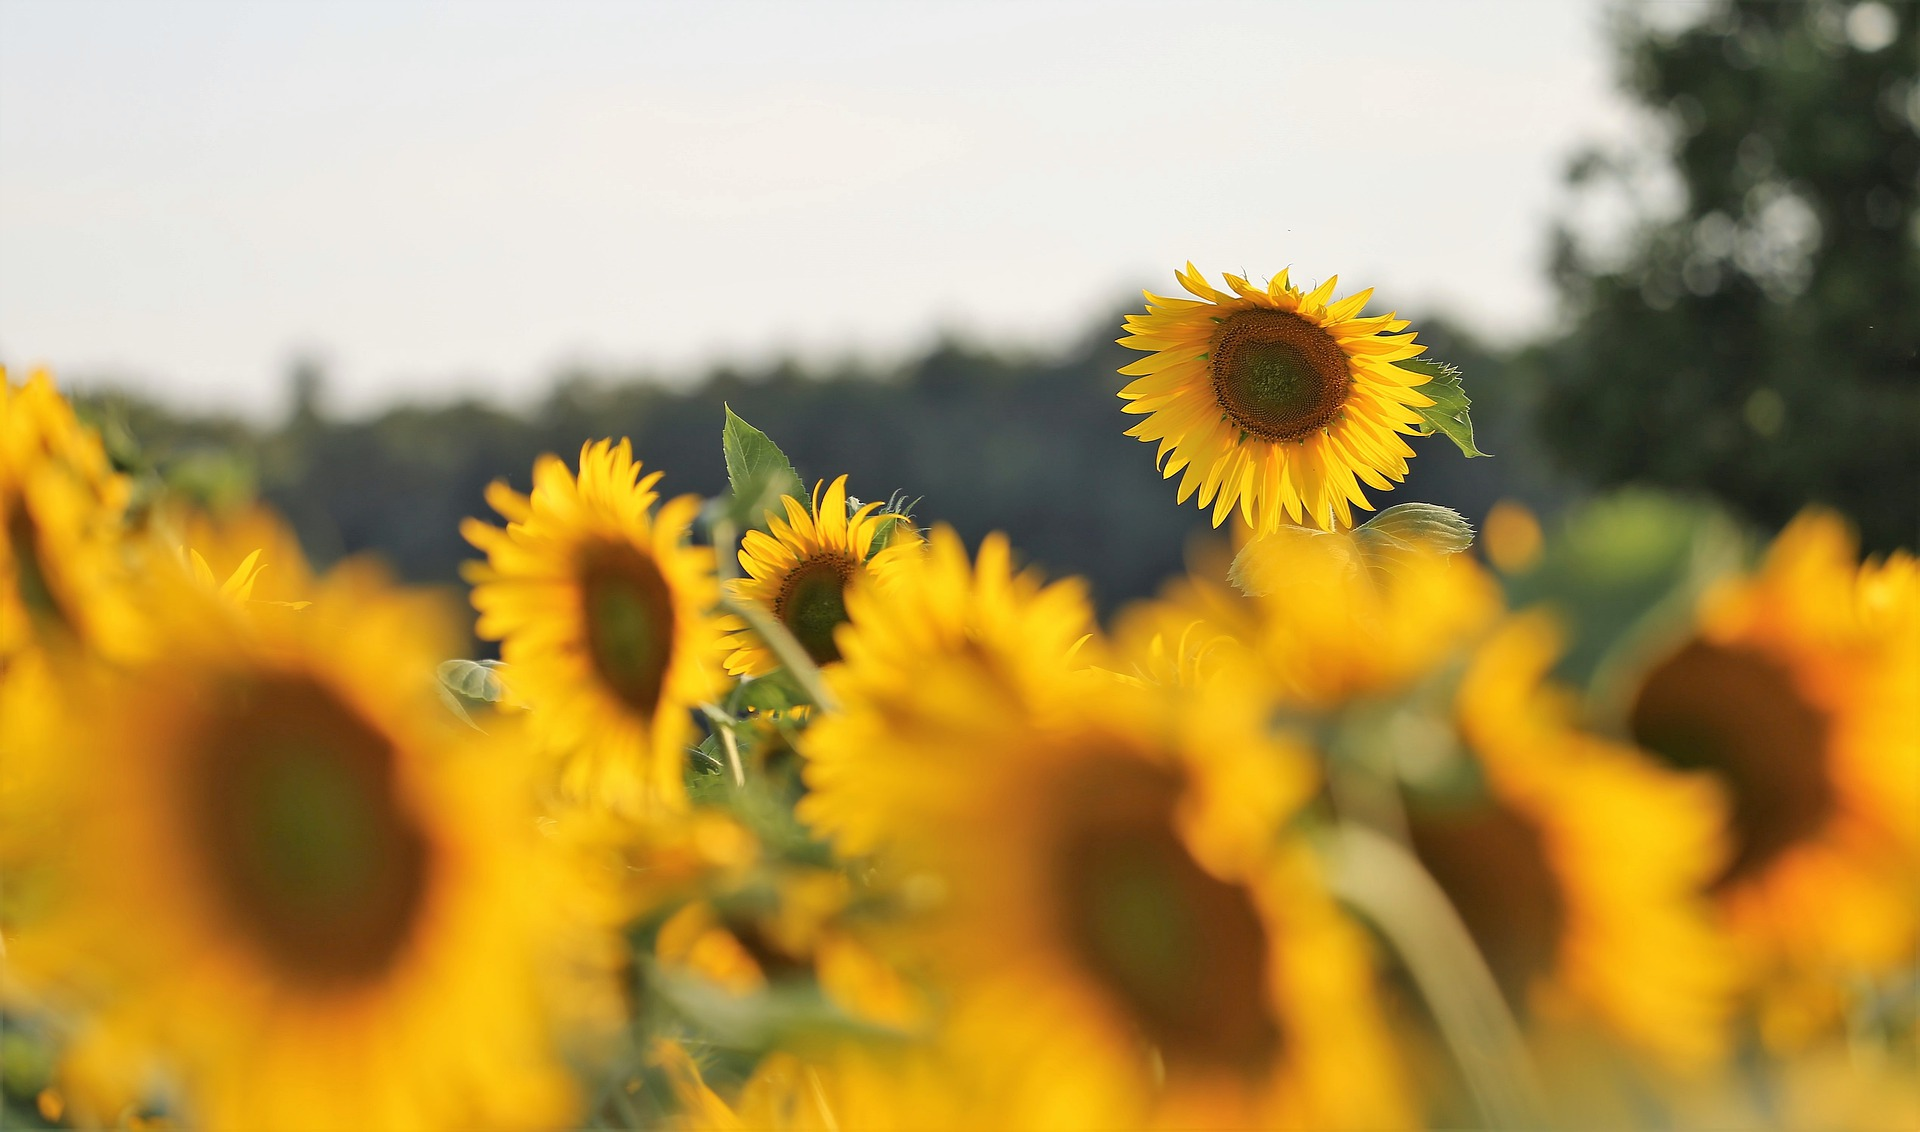 Ukraine increased the production of sunflower oil by 15%